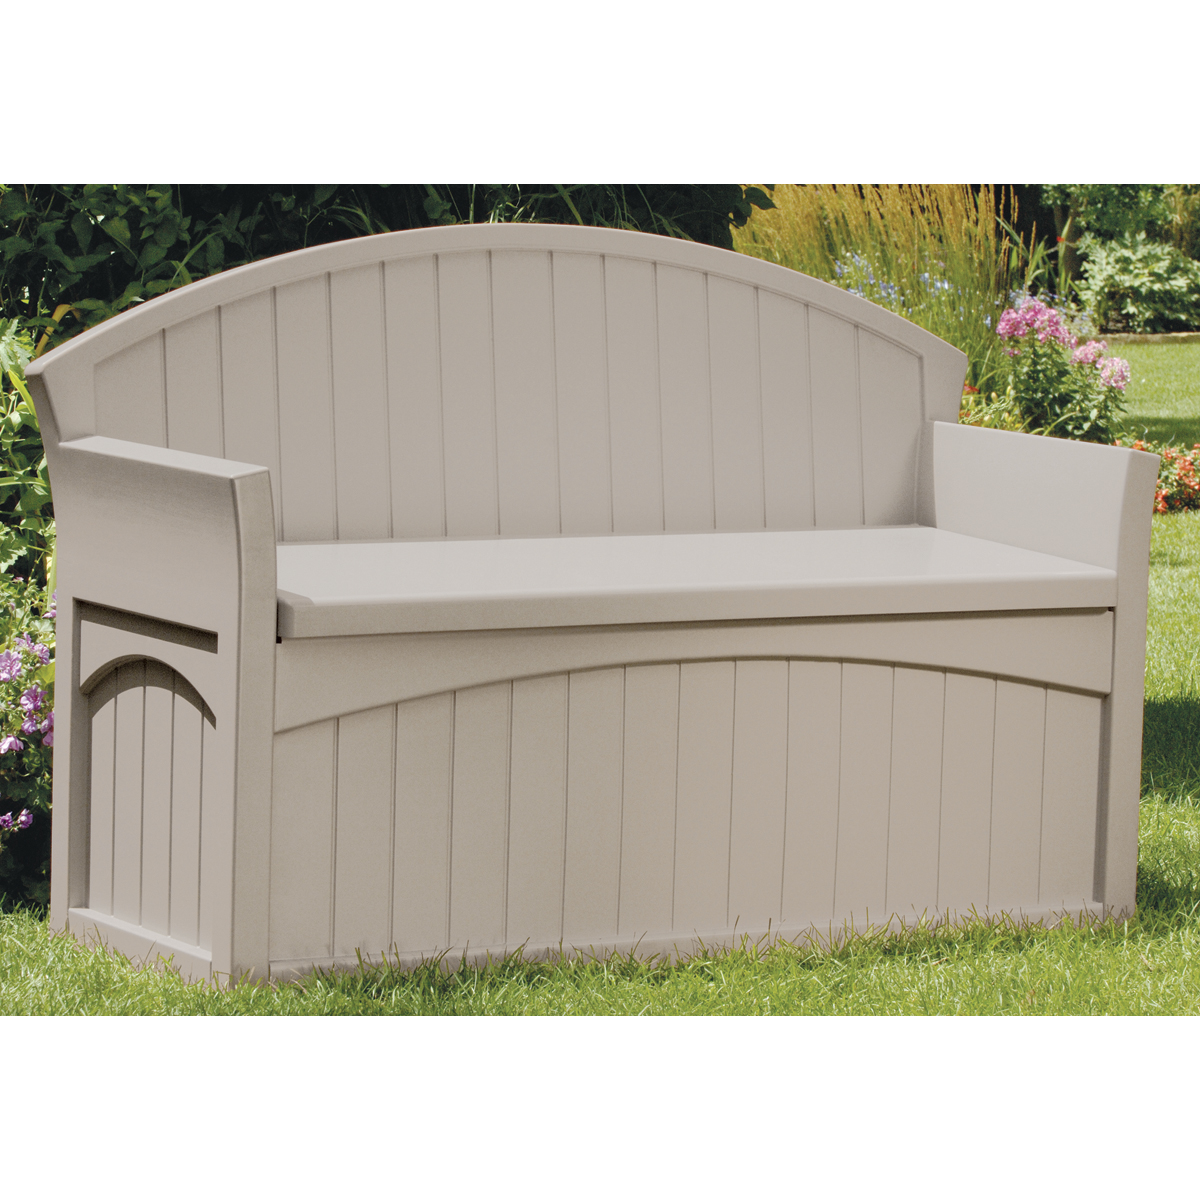 "Suncast PB6700 34.5"" H X 54.75"" W X 21"" D Light Taupe Storage Patio Bench"